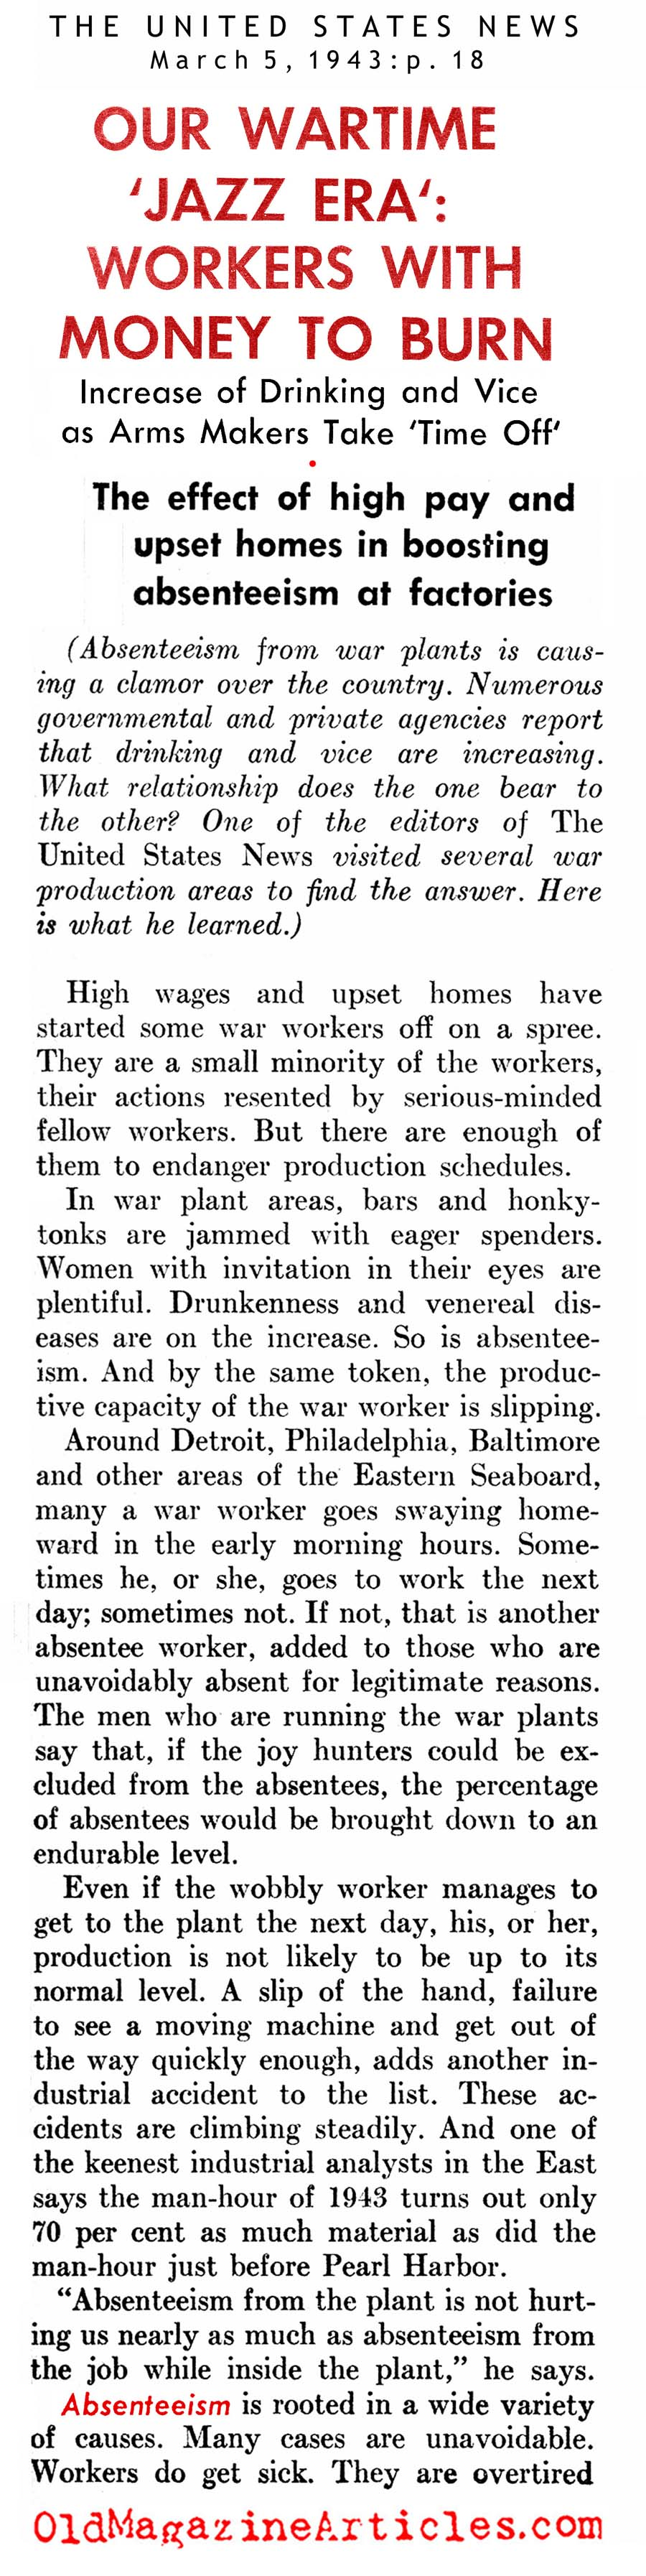 Results of the Economic Boom On The Home Front (United States News, 1943)